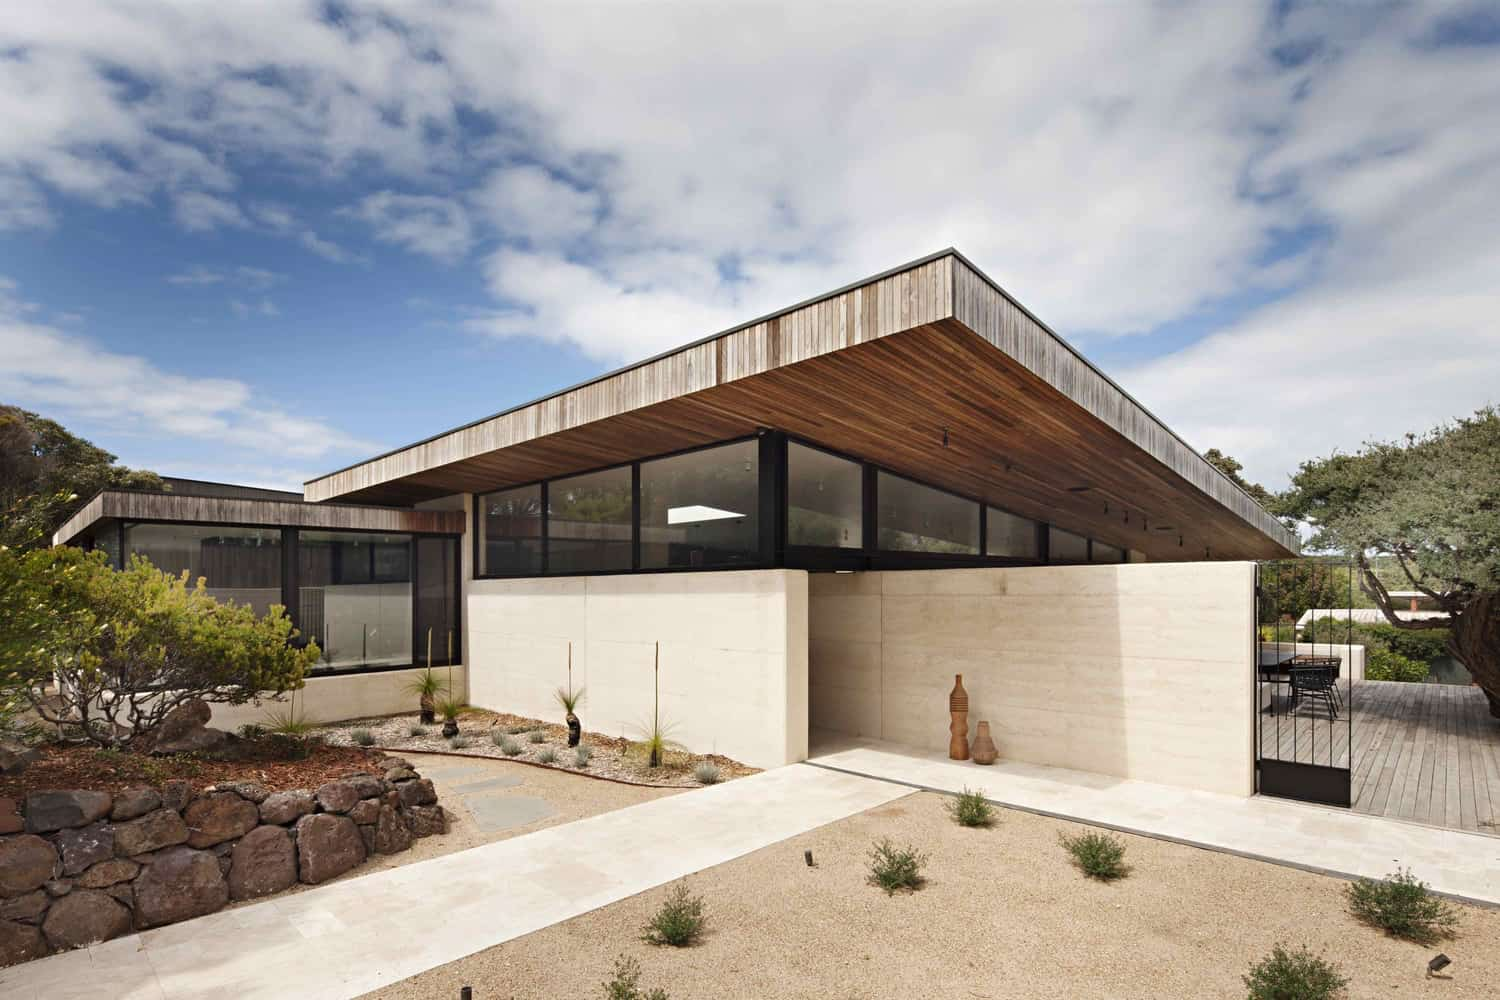 Coastal home in australia showcases rammed earth and timber for Coastal building design